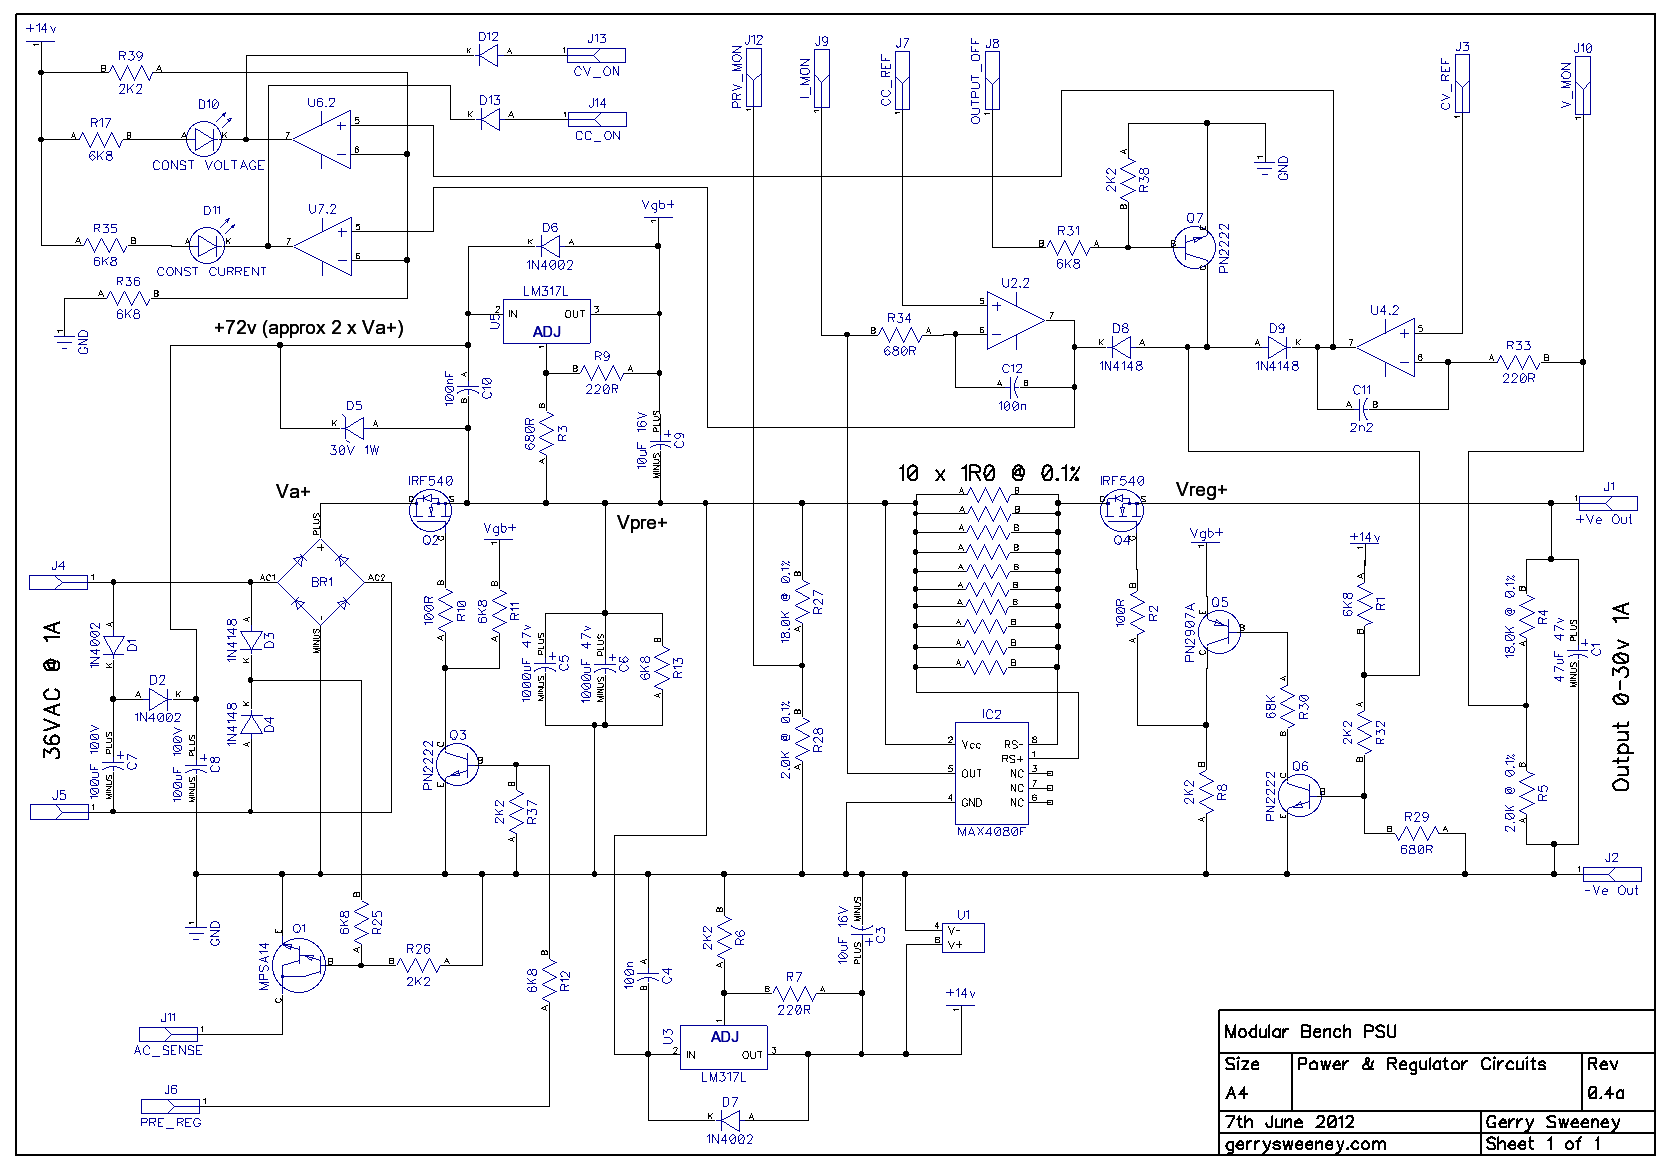 June 2012 Looking At Window Comparator Circuits Psu Schematic Version 04a